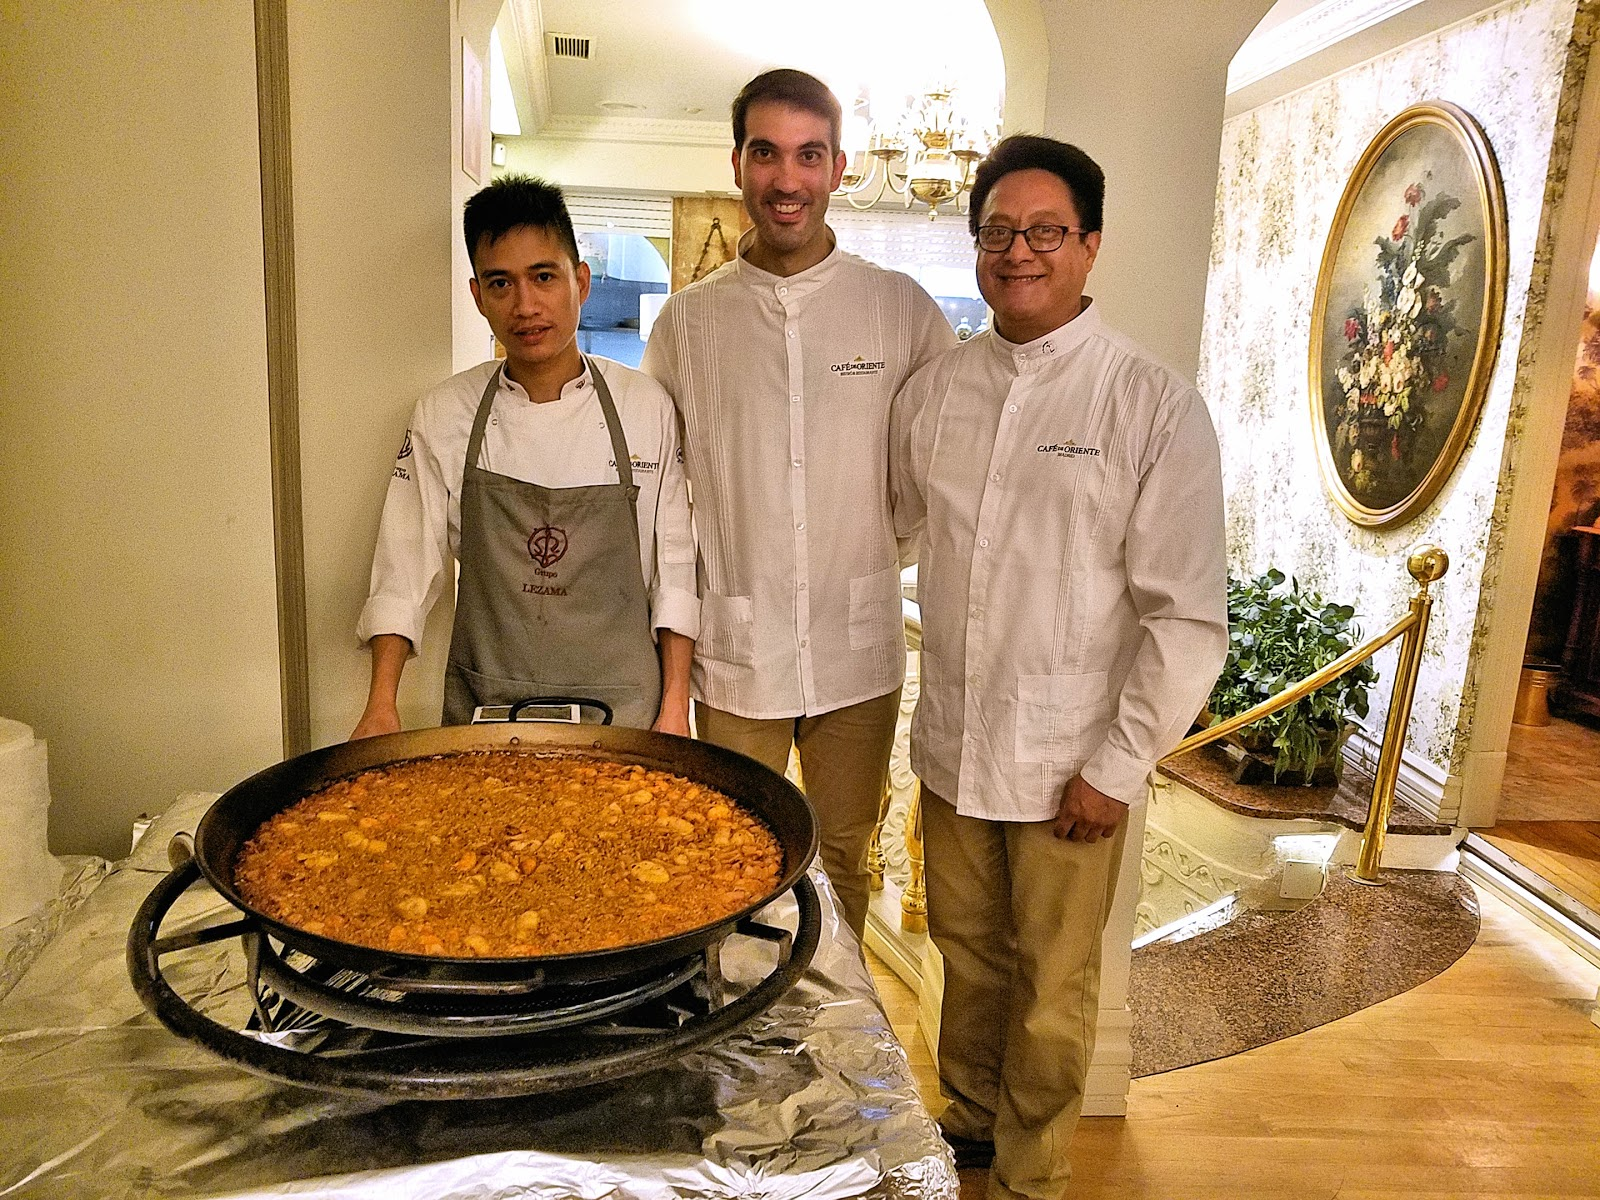 The most scrumptious and succulent seafood paella I have ever tasted was prepared in the largest kettle I've ever seen!